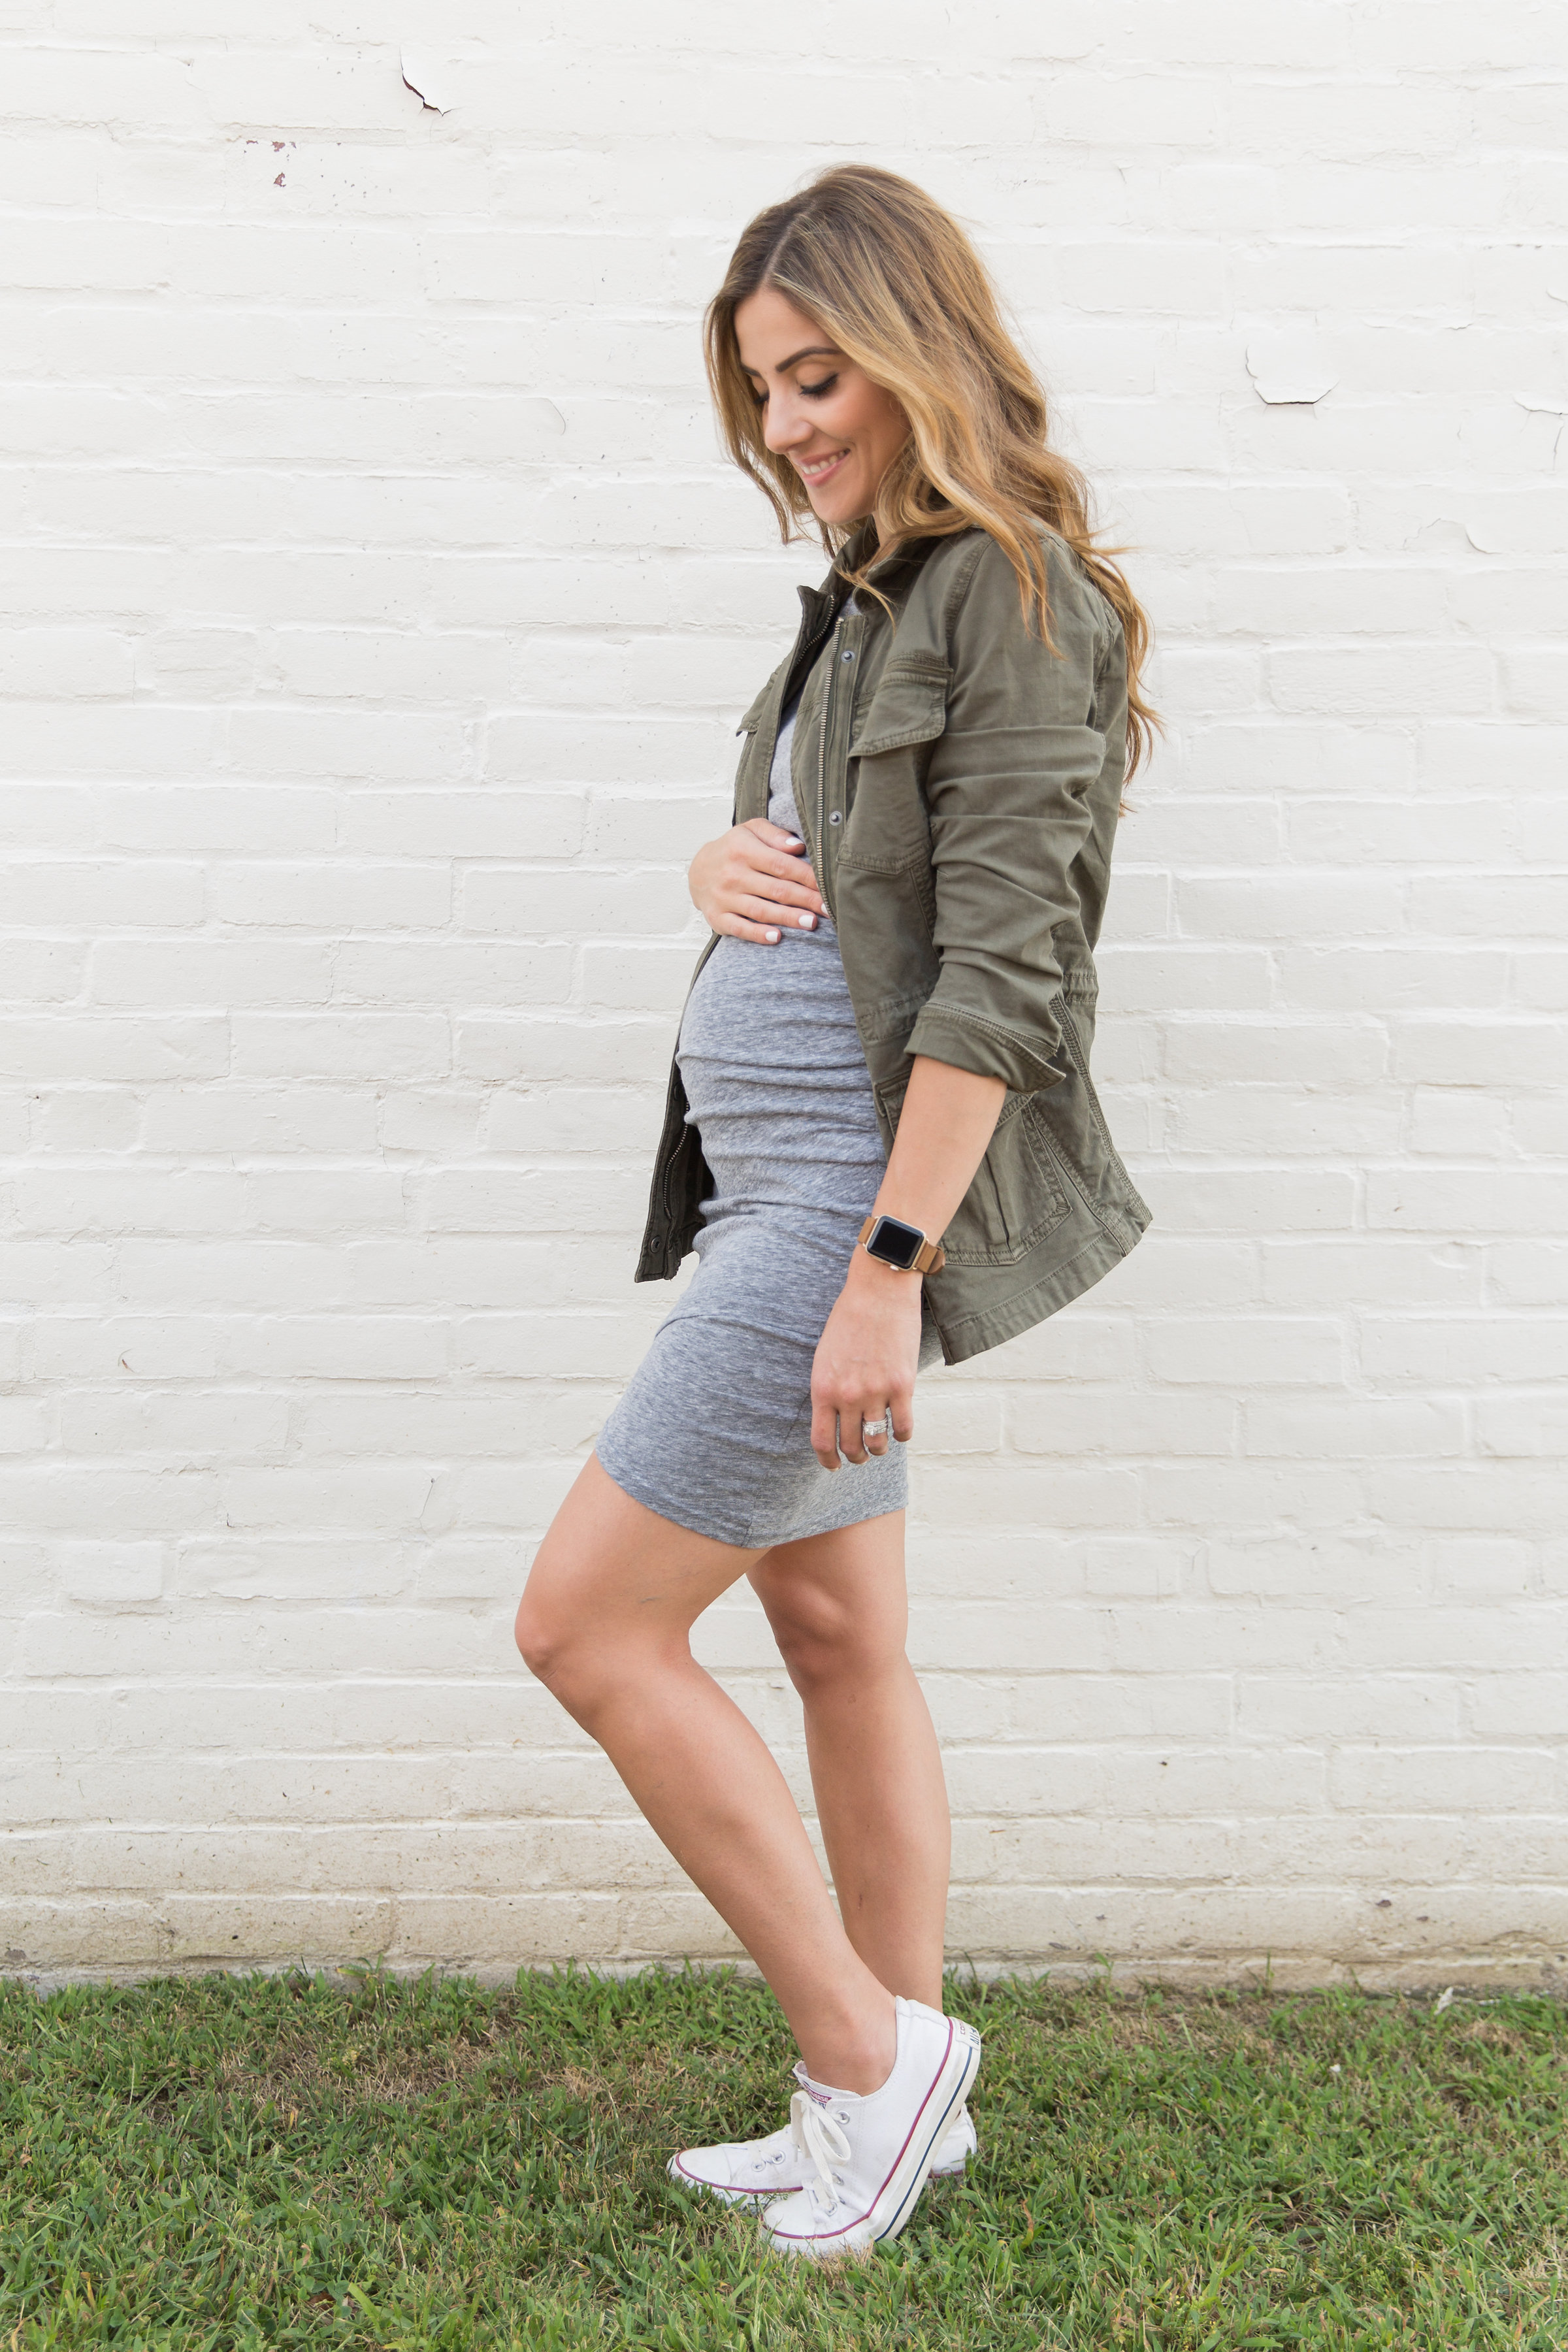 fa2ba25b4 Tips for Wearing Non-Maternity Dresses - Lauren McBride